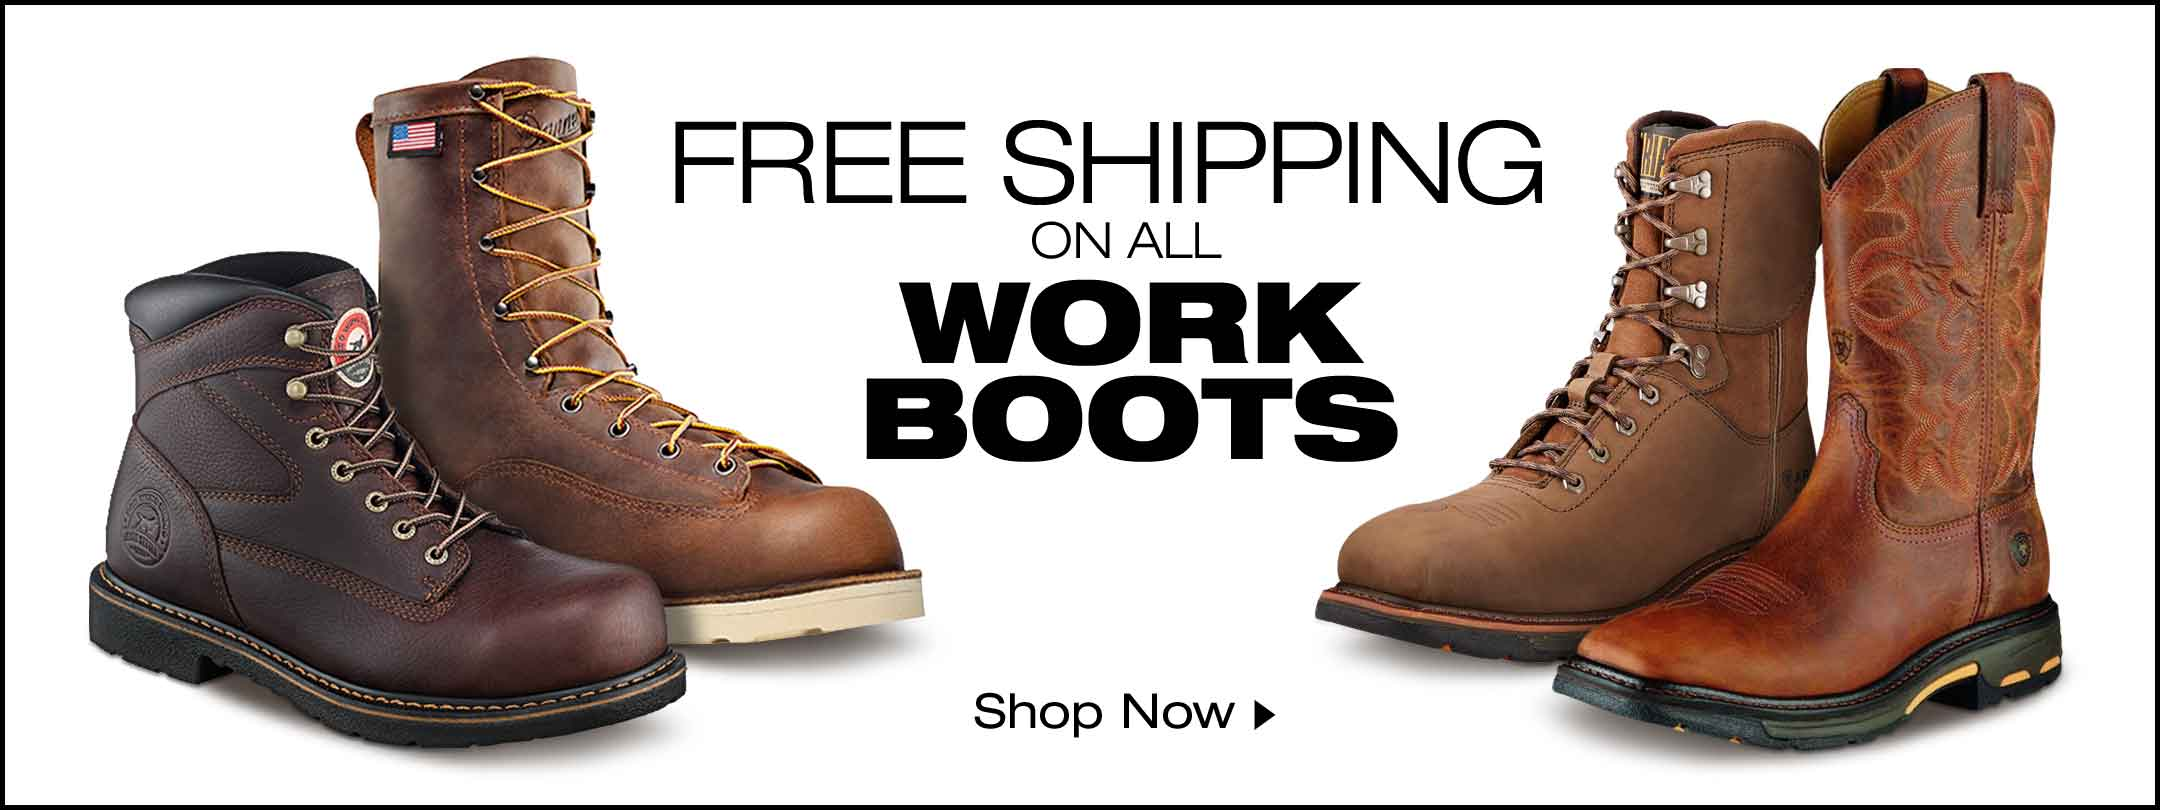 Free Shipping On All Work Boots